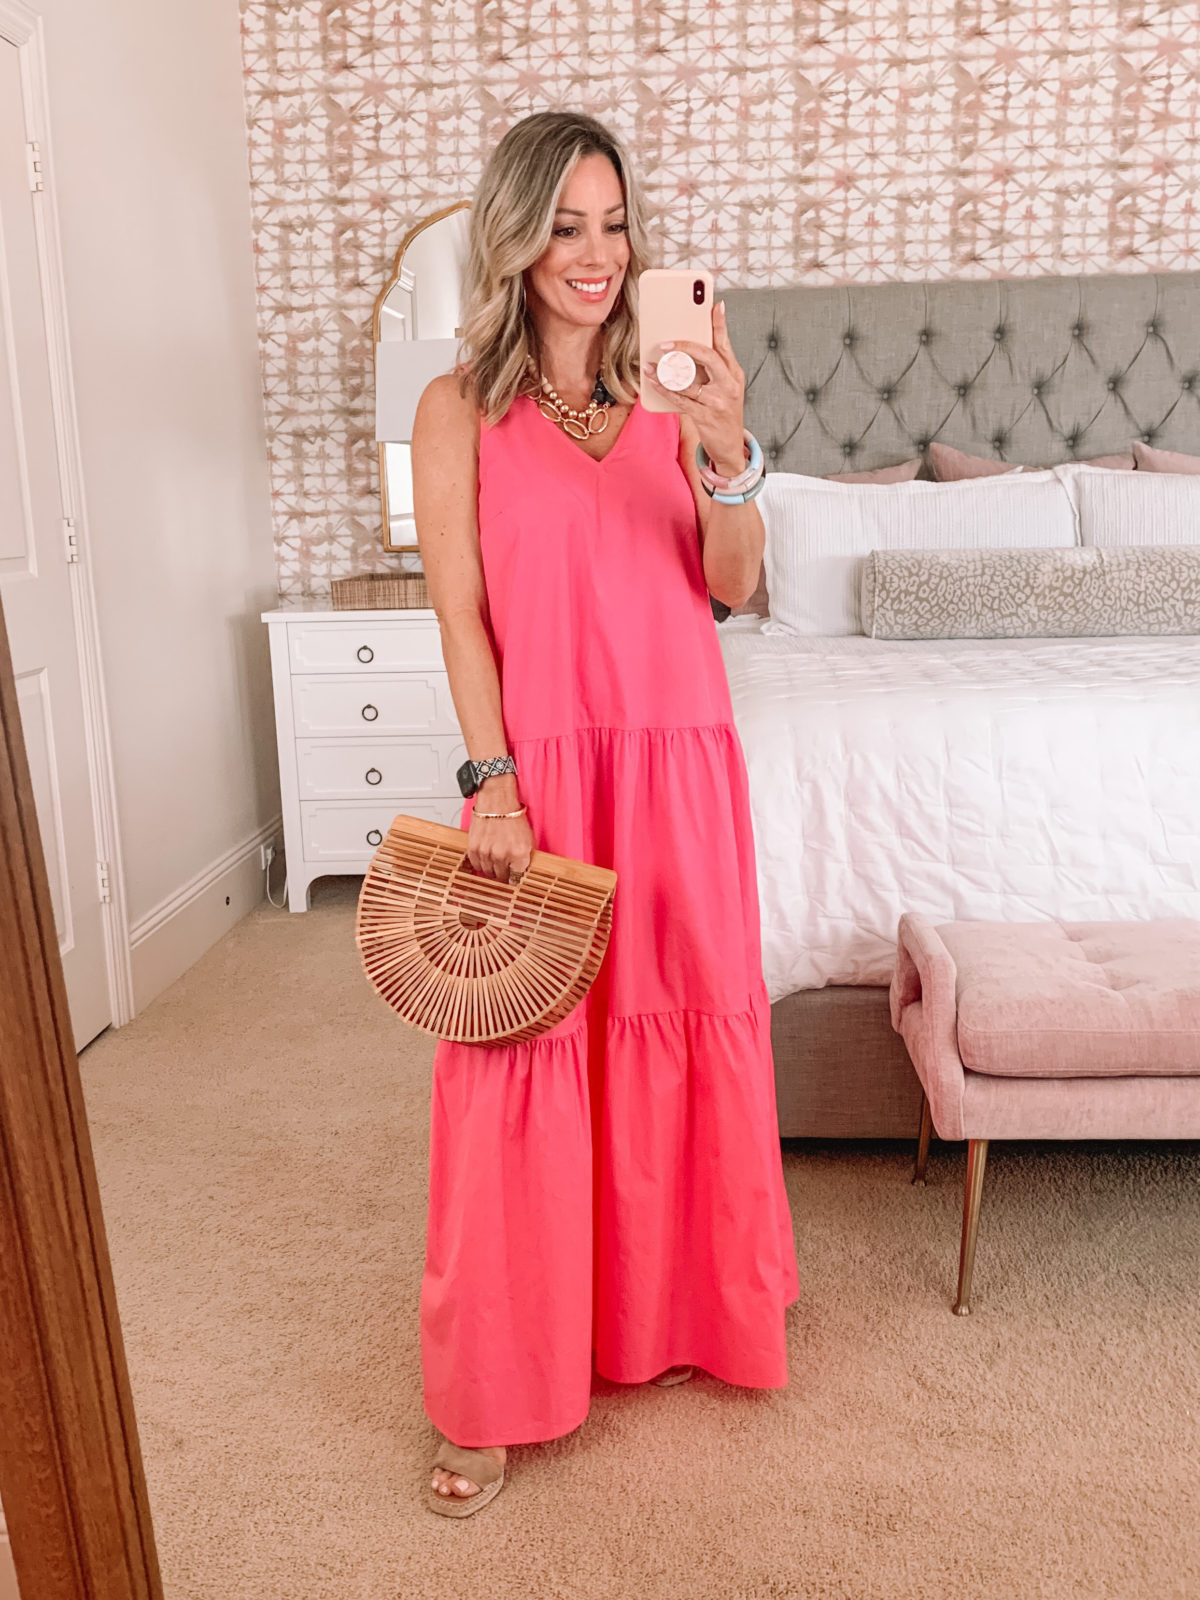 Dressing Room Finds, Target Maxi Dress and Bamboo Clutch with Wedges